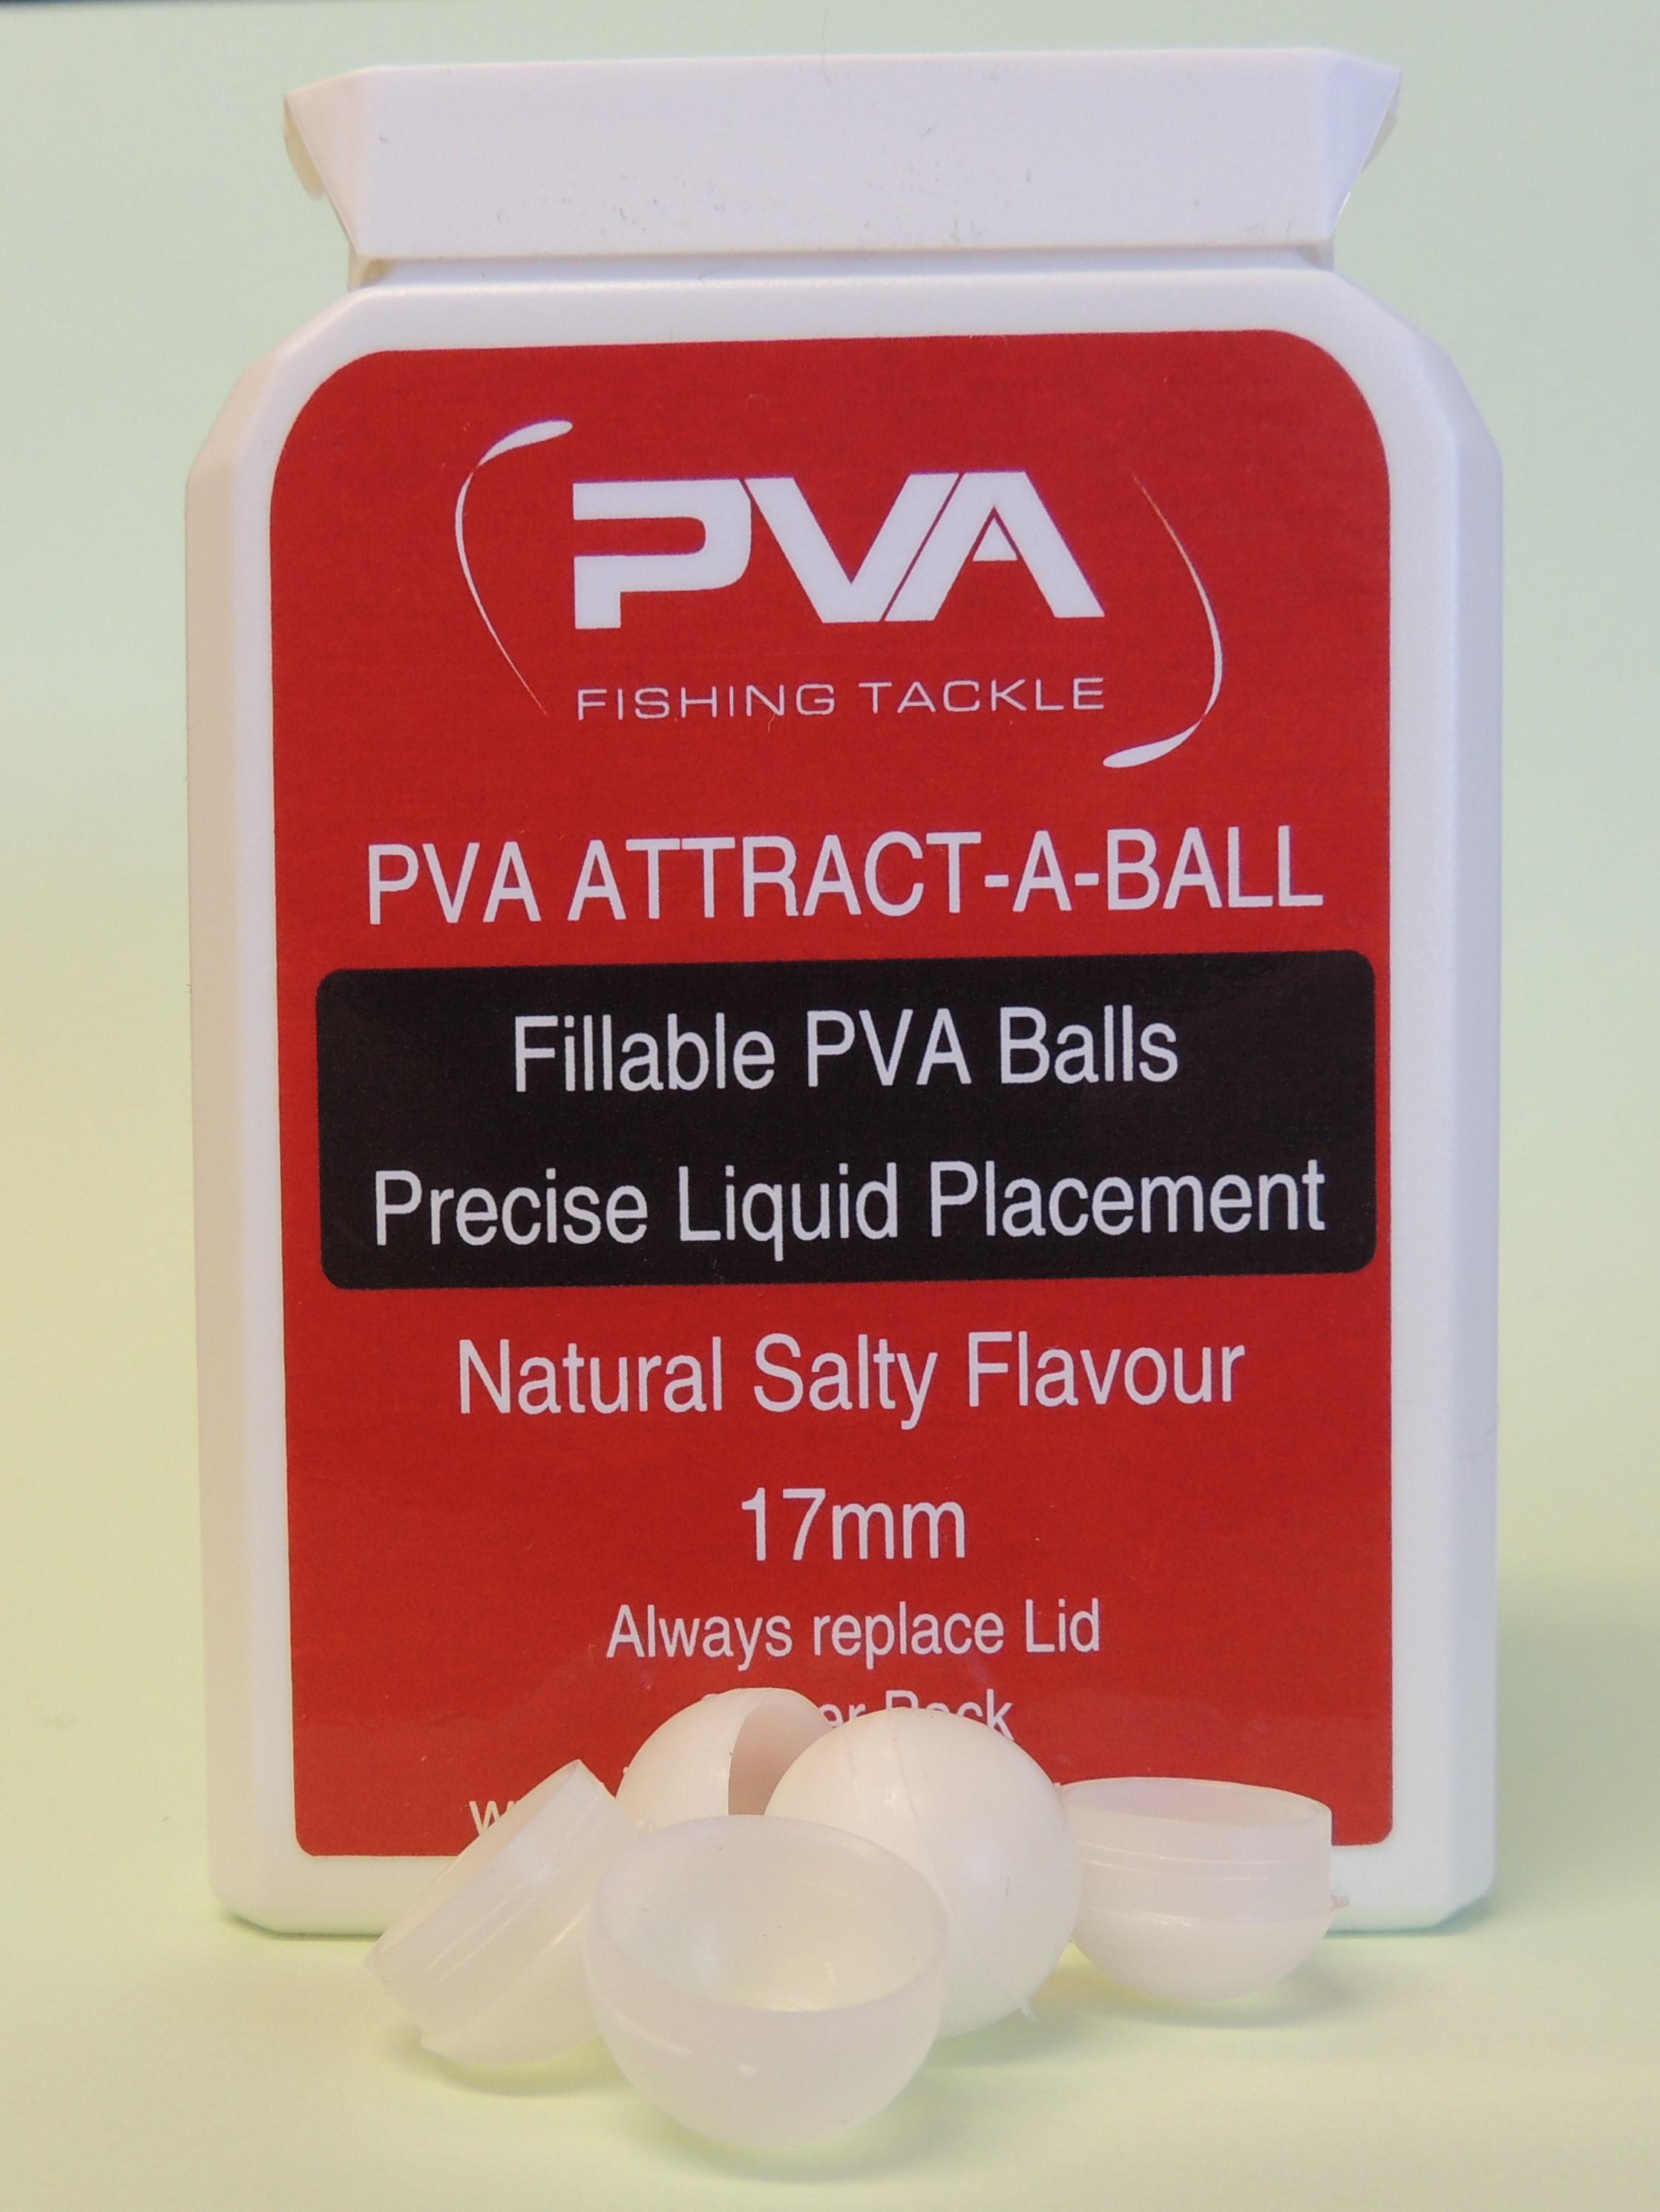 PVA ATTRACT-A-BALL's